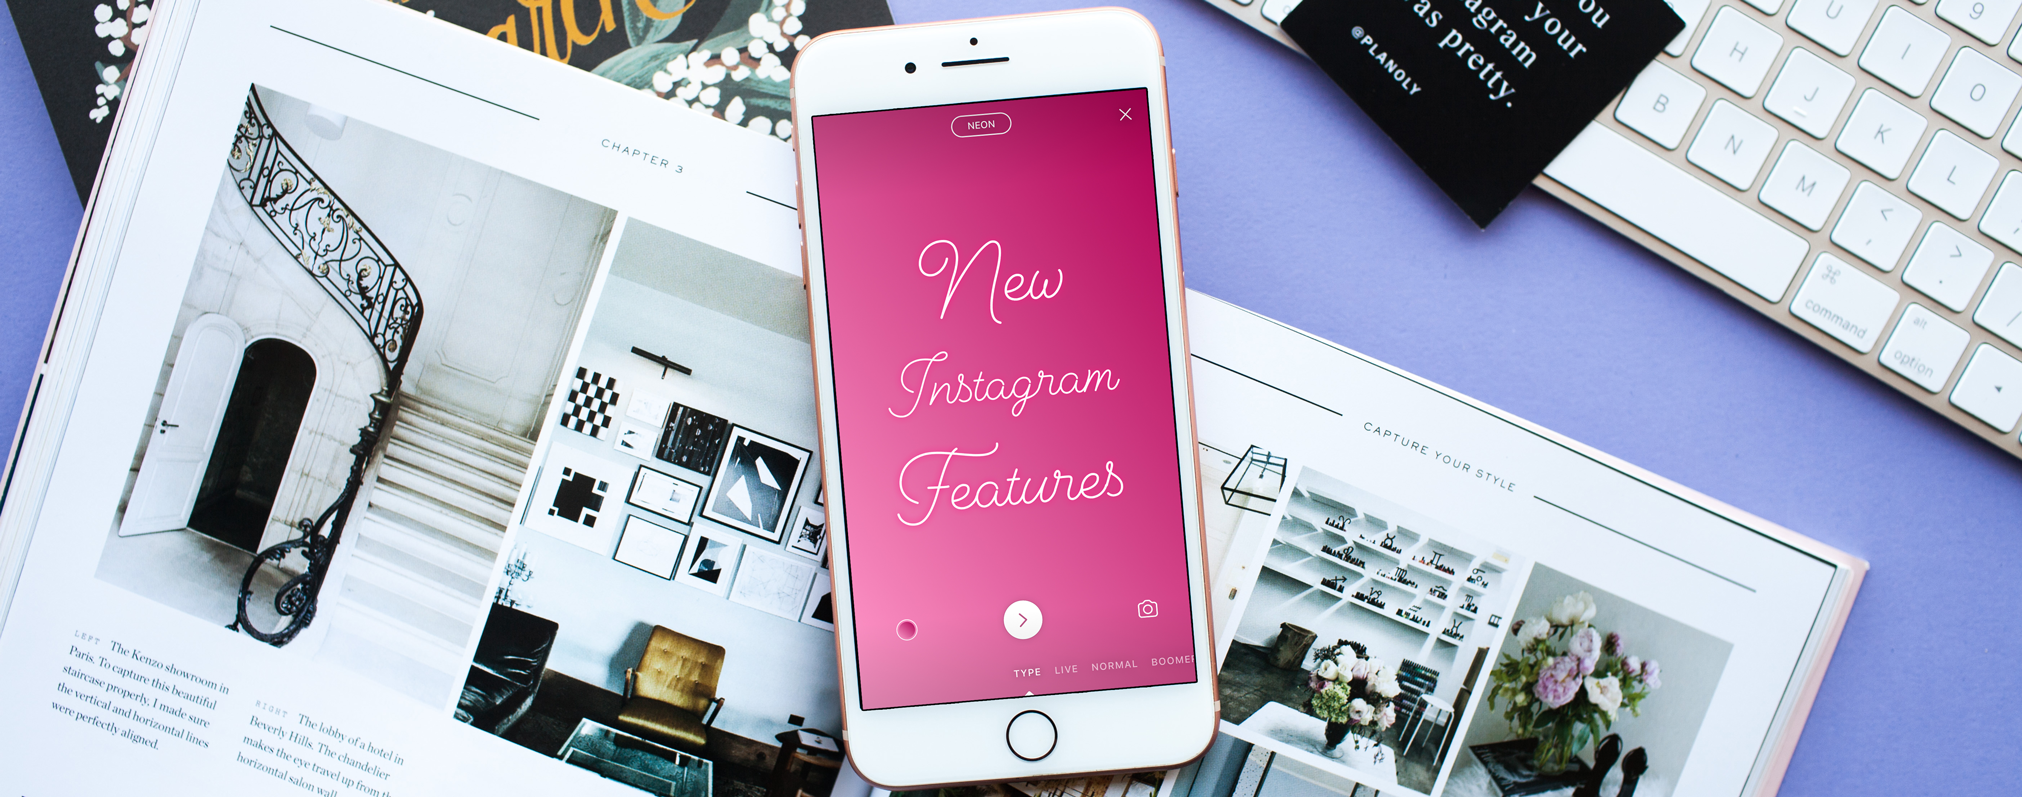 New Instagram Features: Text Mode, Animated GIF Stickers, & More!